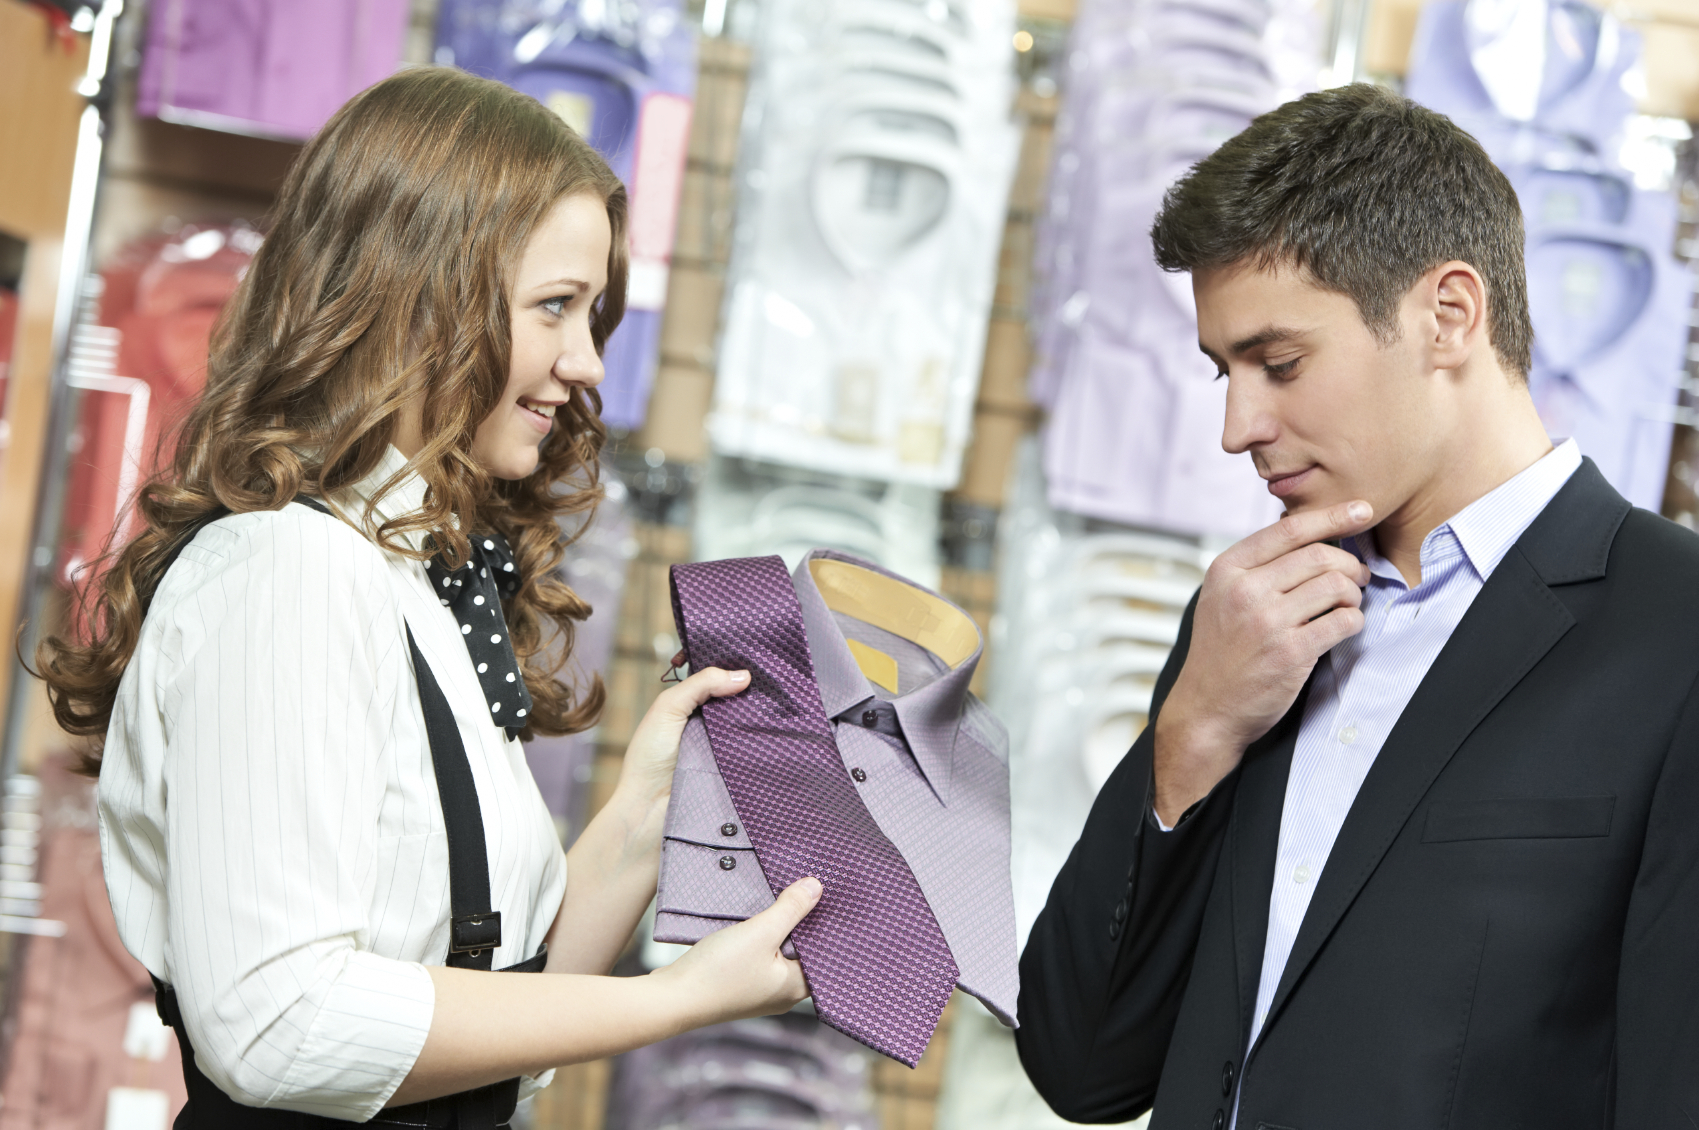 Elegant Young Man Choosing Shirt And Necktie During Apparel Shopping At Clothing  Store  Sales Associate